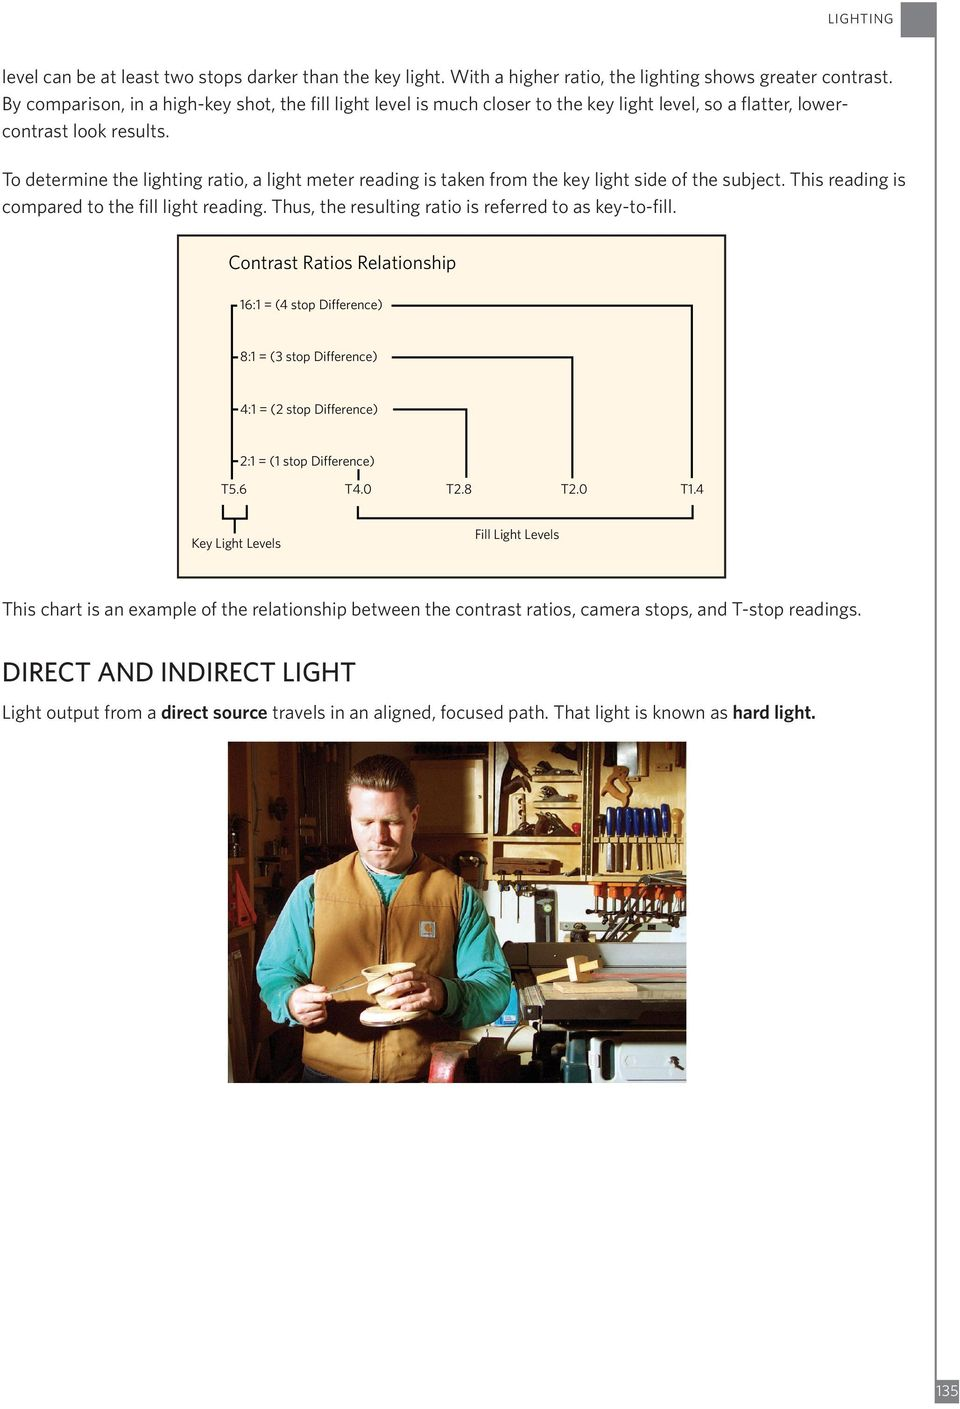 To determine the lighting ratio, a light meter reading is taken from the key light side of the subject. This reading is compared to the fill light reading.